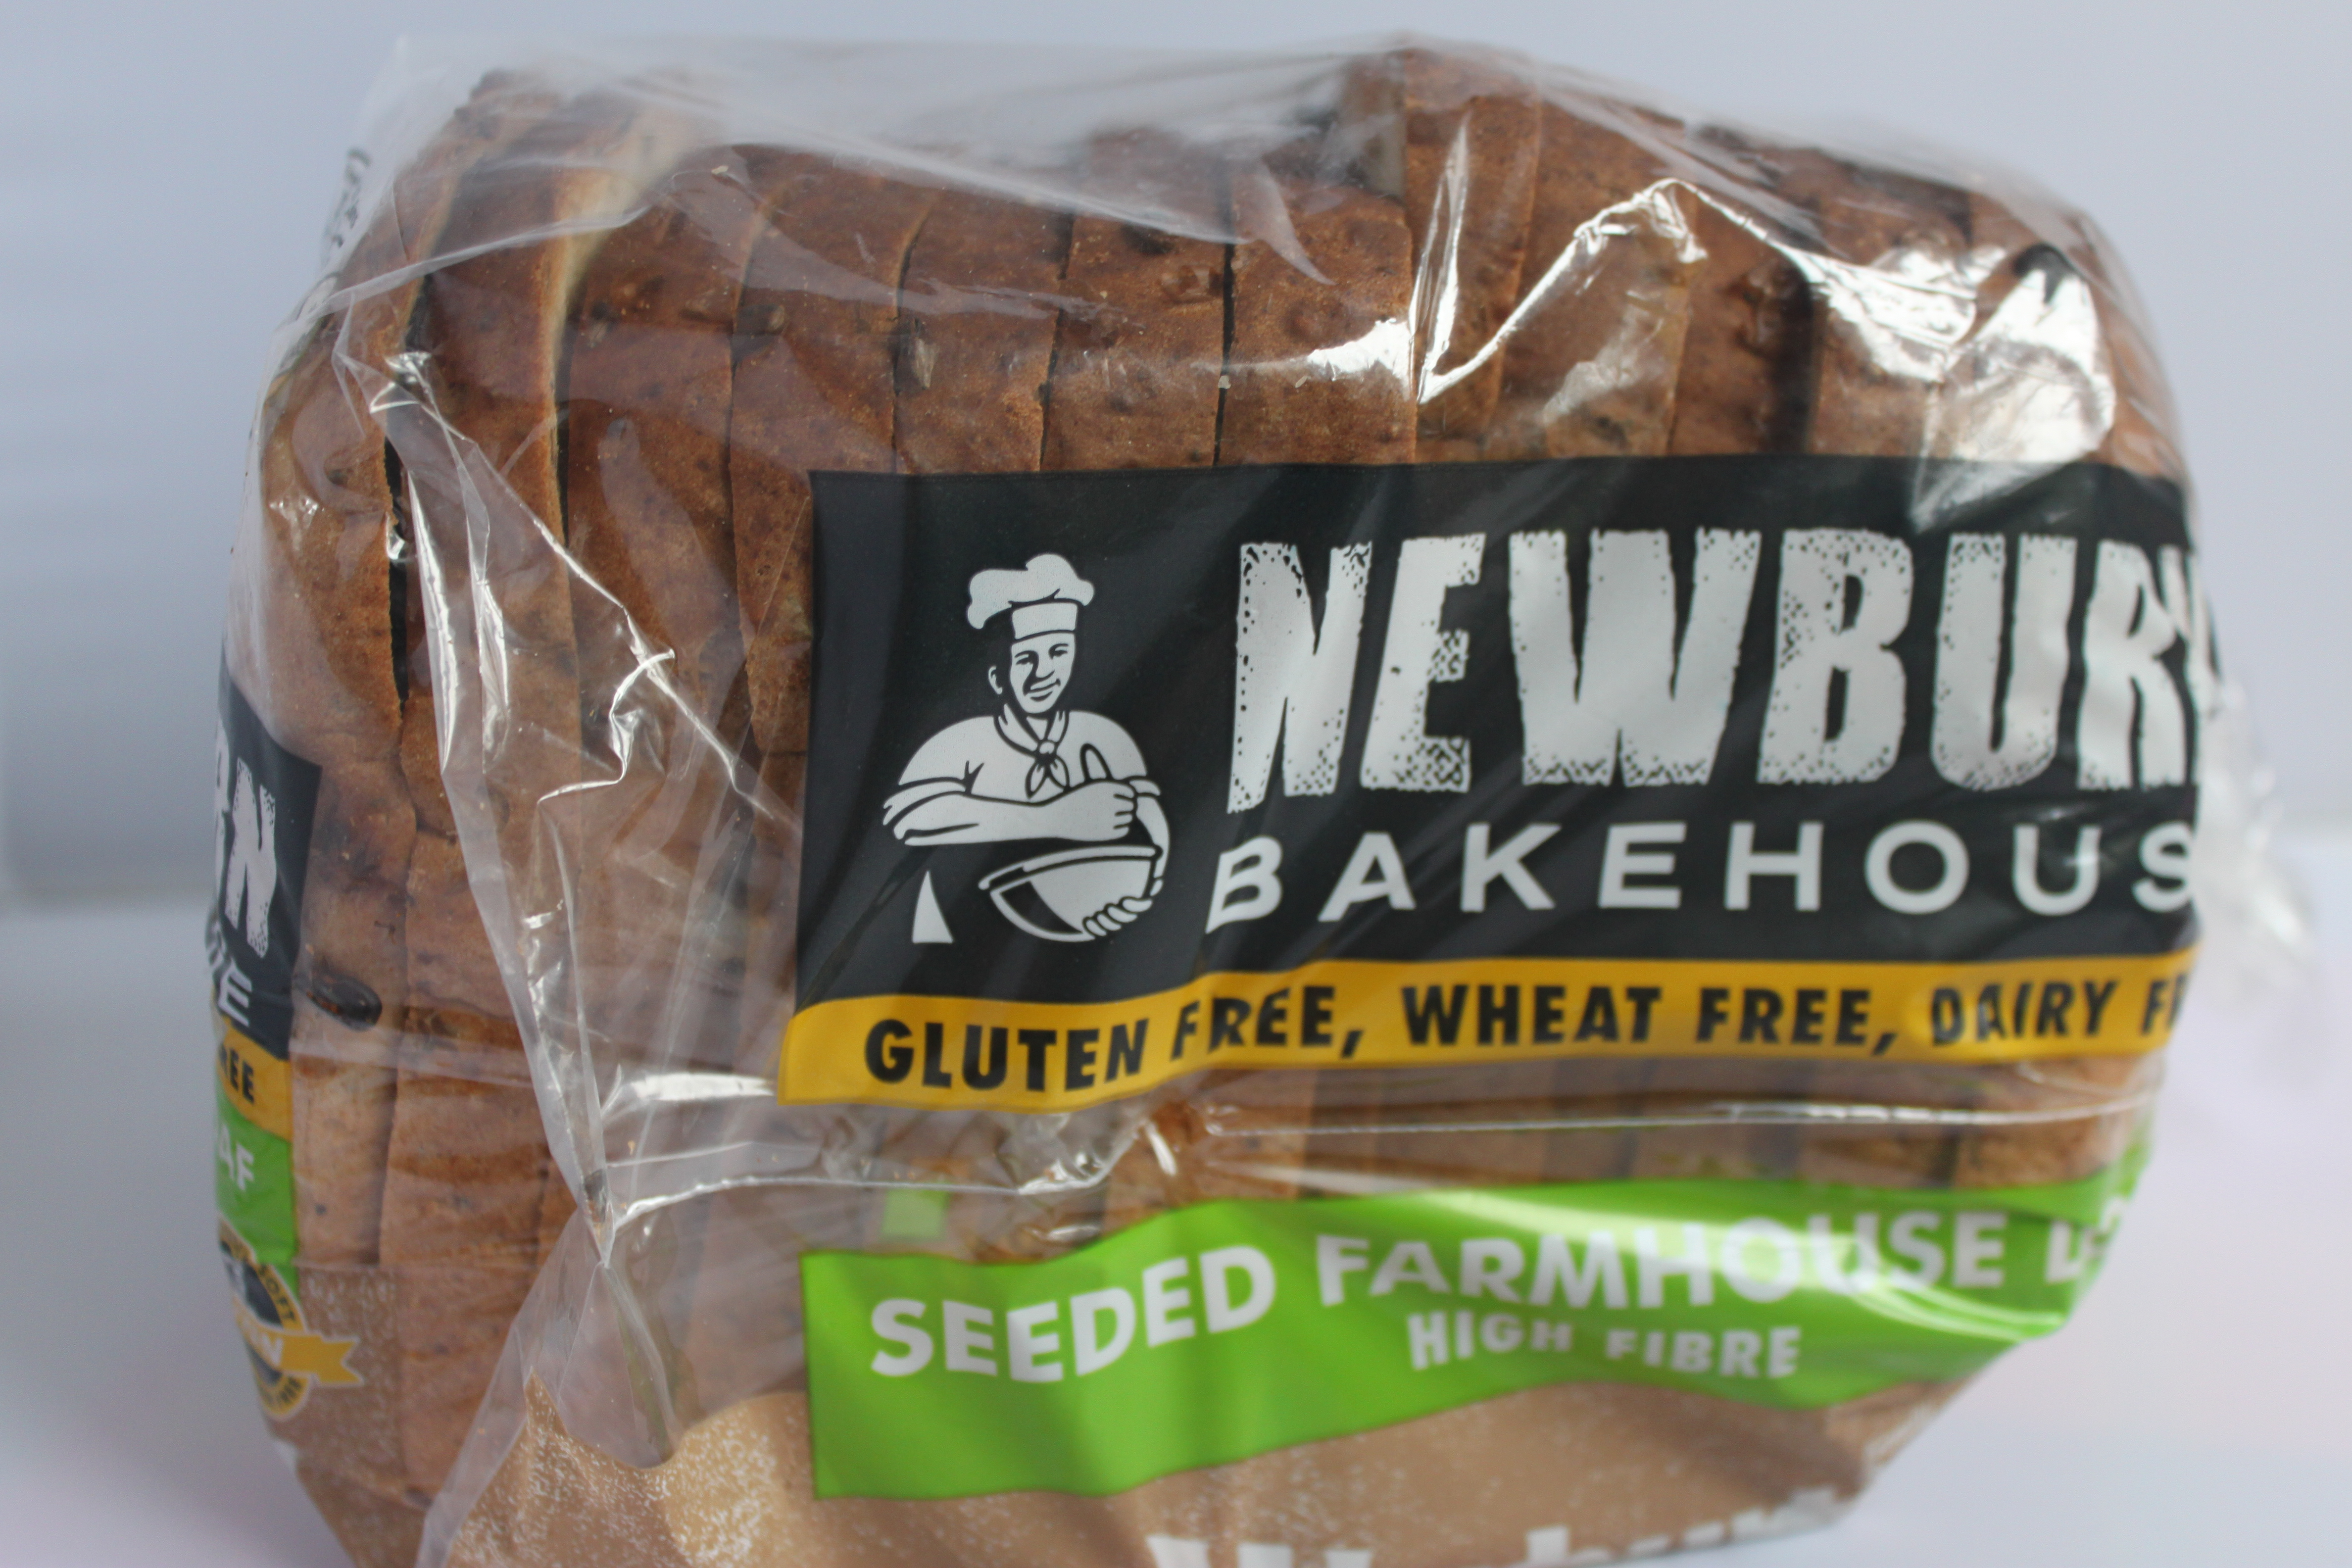 5 Newburn Bakehouse By Warburtons High Fibre Seeded Farmhouse Loaf